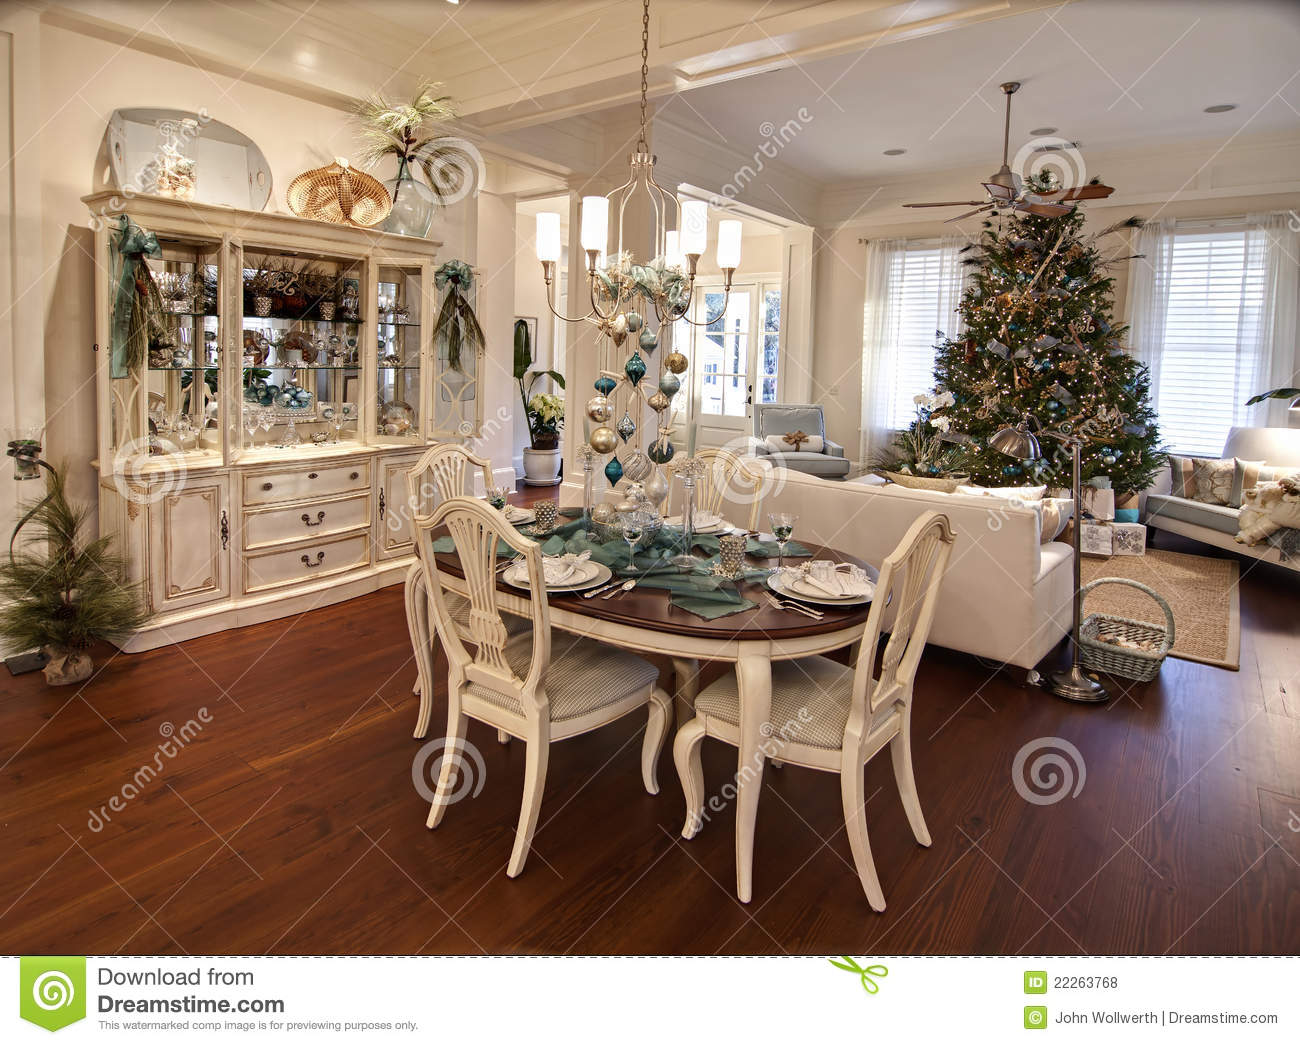 Luxury christmas apartment stock photo image of dine 22263768 for Decoration de noel luxe